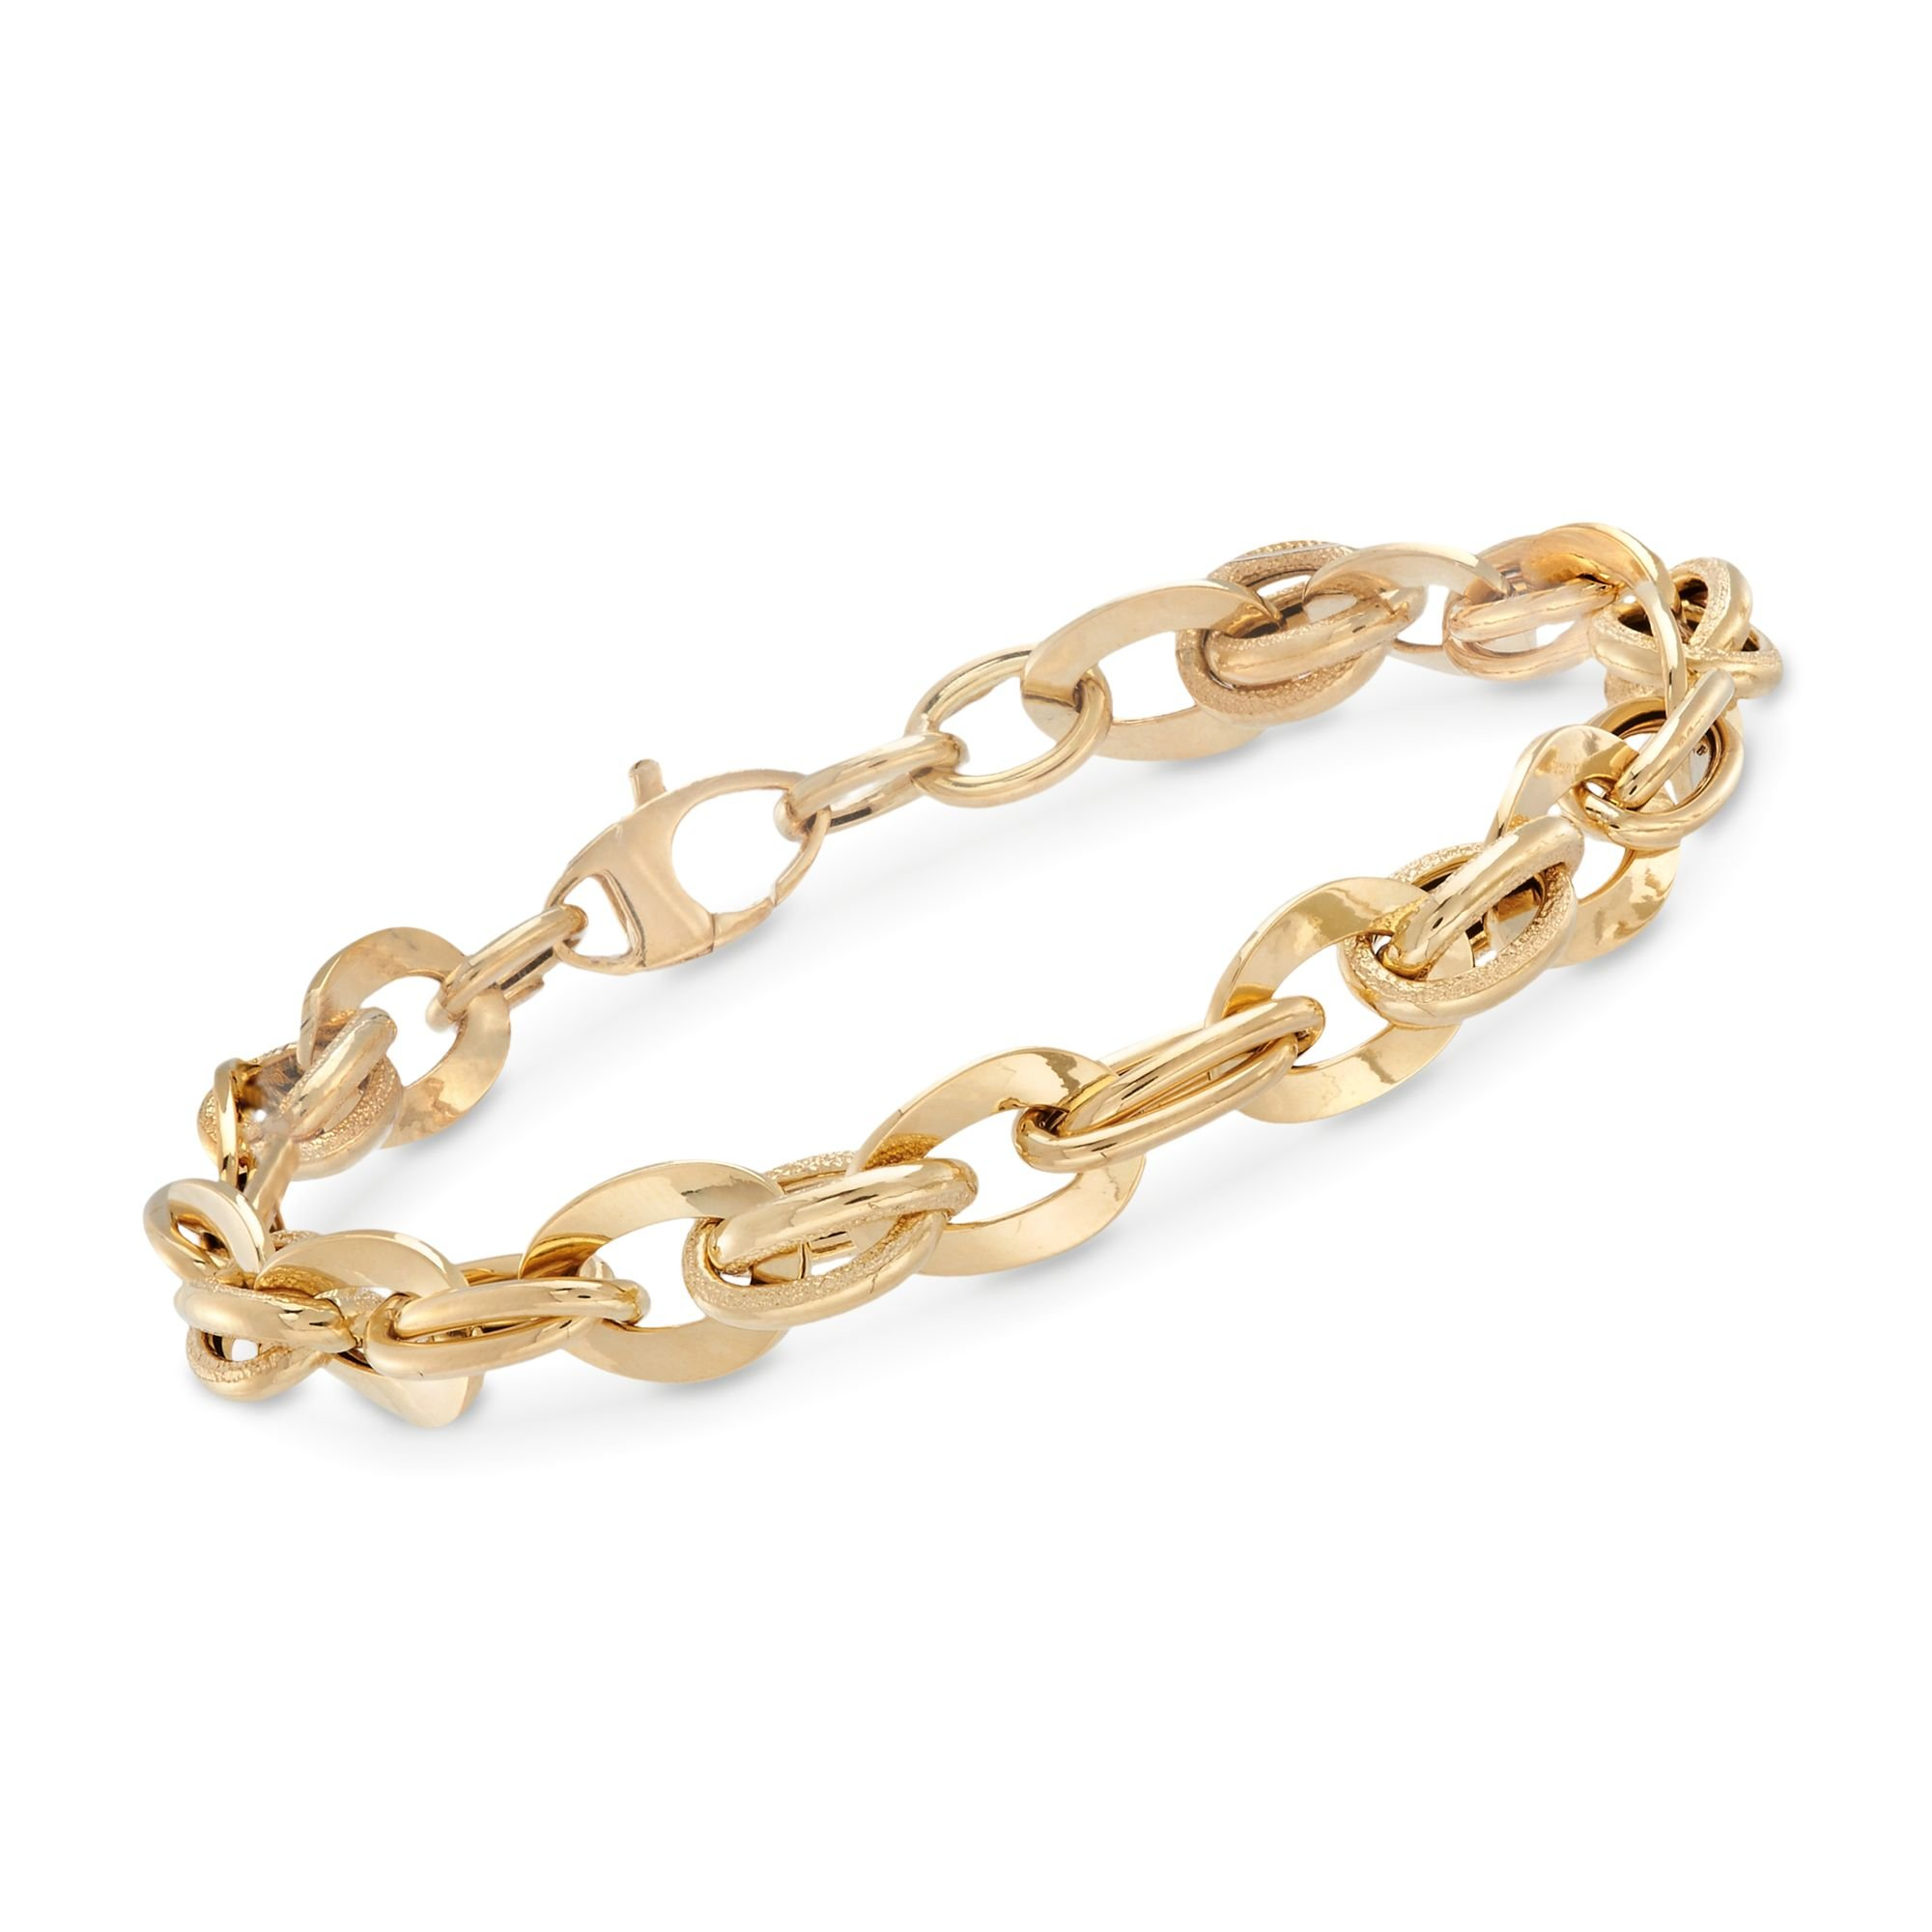 Ross-Simons Italian 18kt Yellow Gold Textured and Polished Oval-Link Bracelet